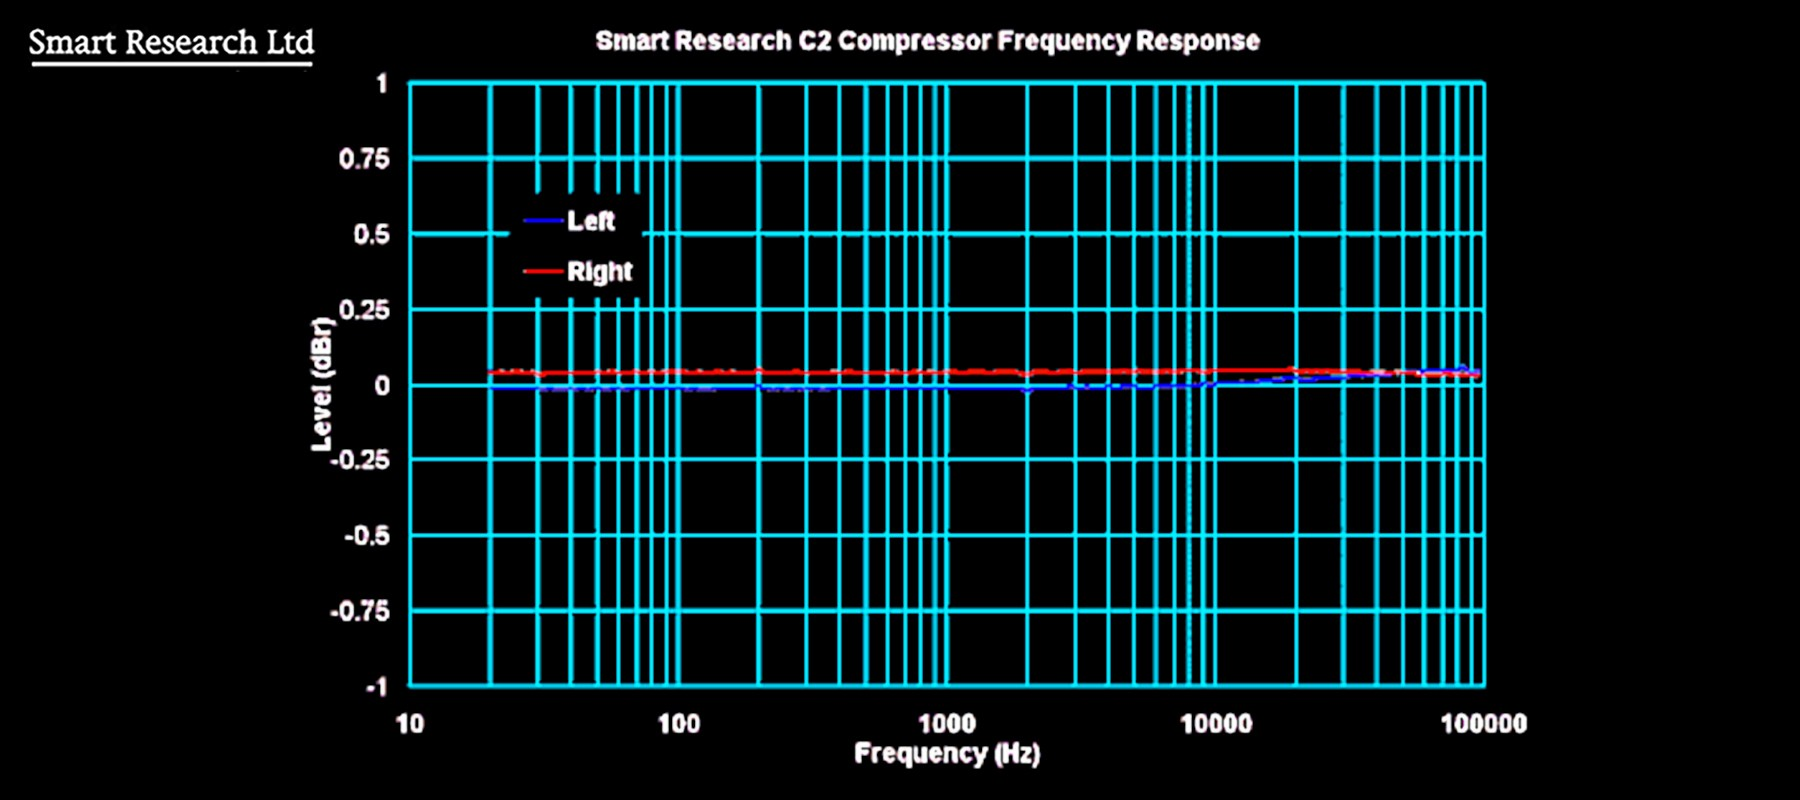 Smart Research C2